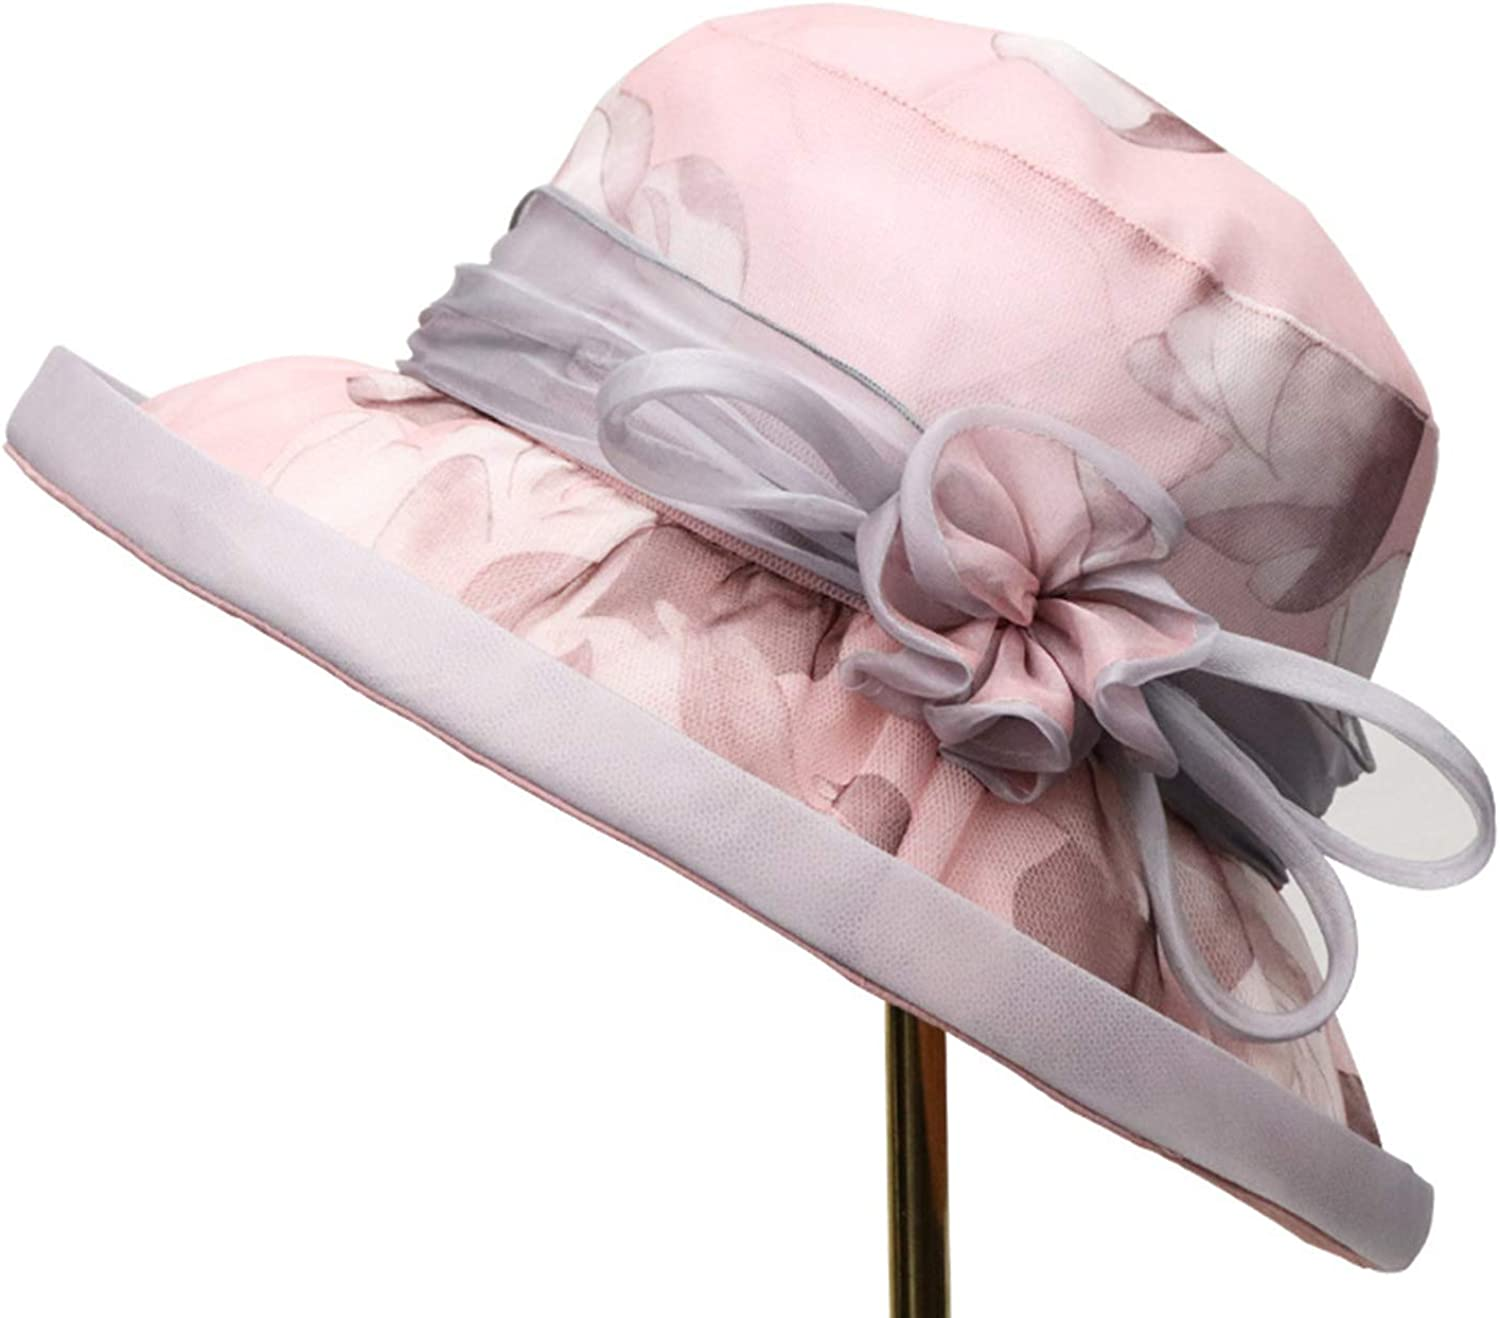 Bow Sun Hat Female, Spring and Summer Silk Hat, Sunshade Casual Fisherman Hat Female, Tourist Beach Hat, 5658cm